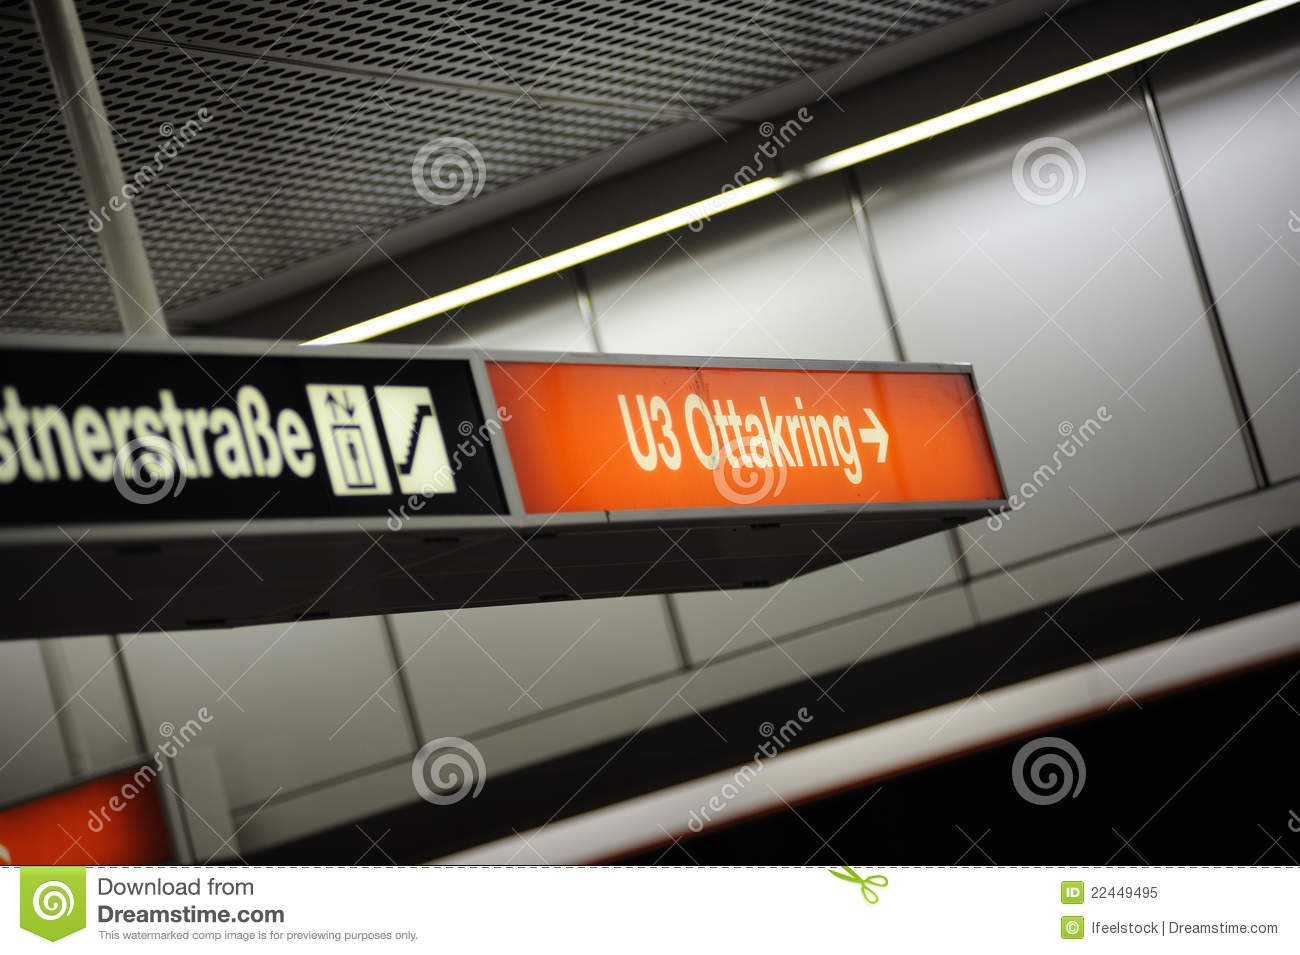 Ottakring U3 Subway Station Stock Image Image Of District